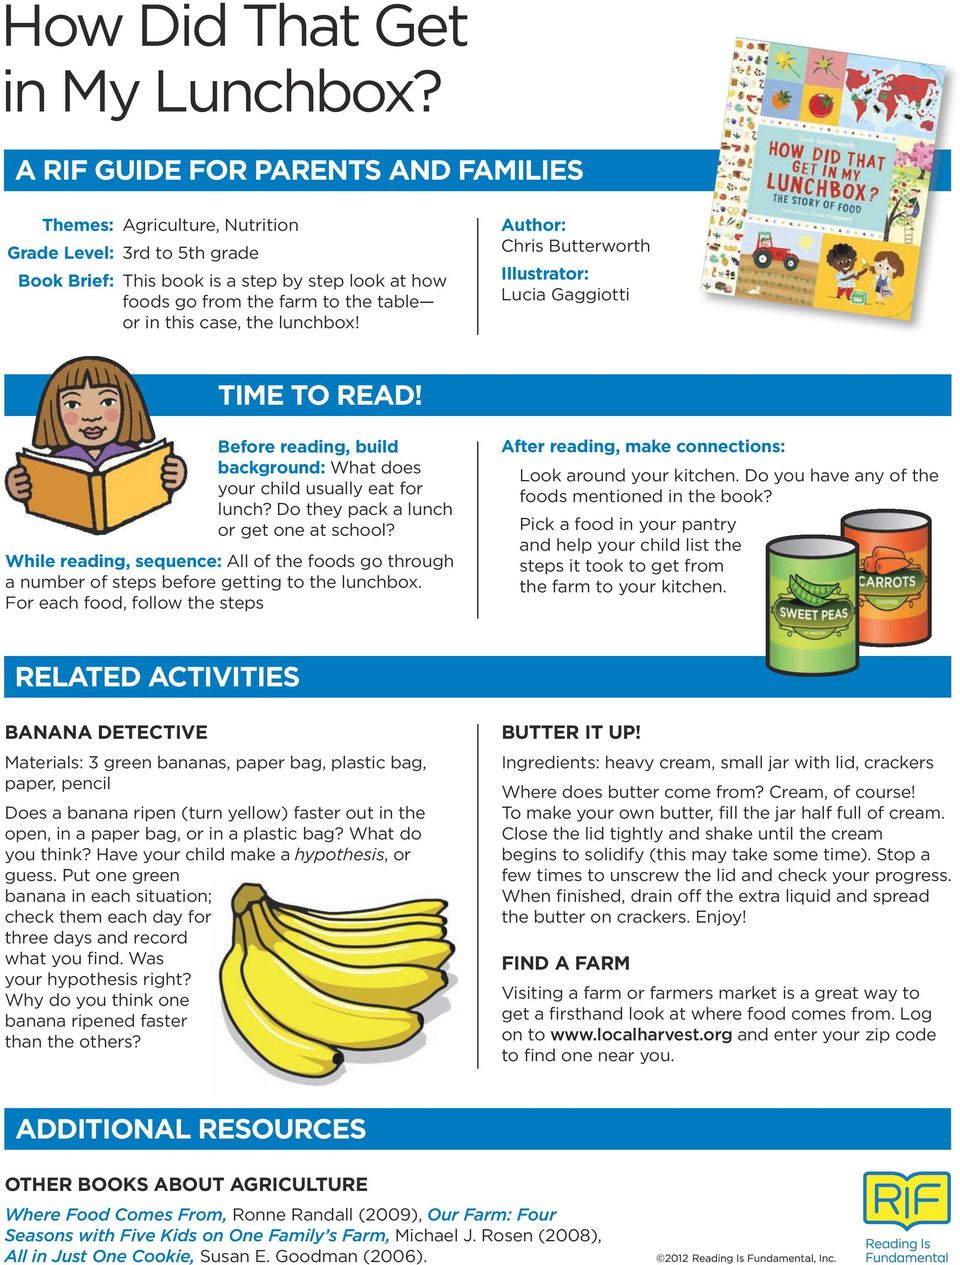 Do you have any of the foods mentioned in the book? Pick a food in your pantry and help your child list the steps it took to get from the farm to your kitchen.